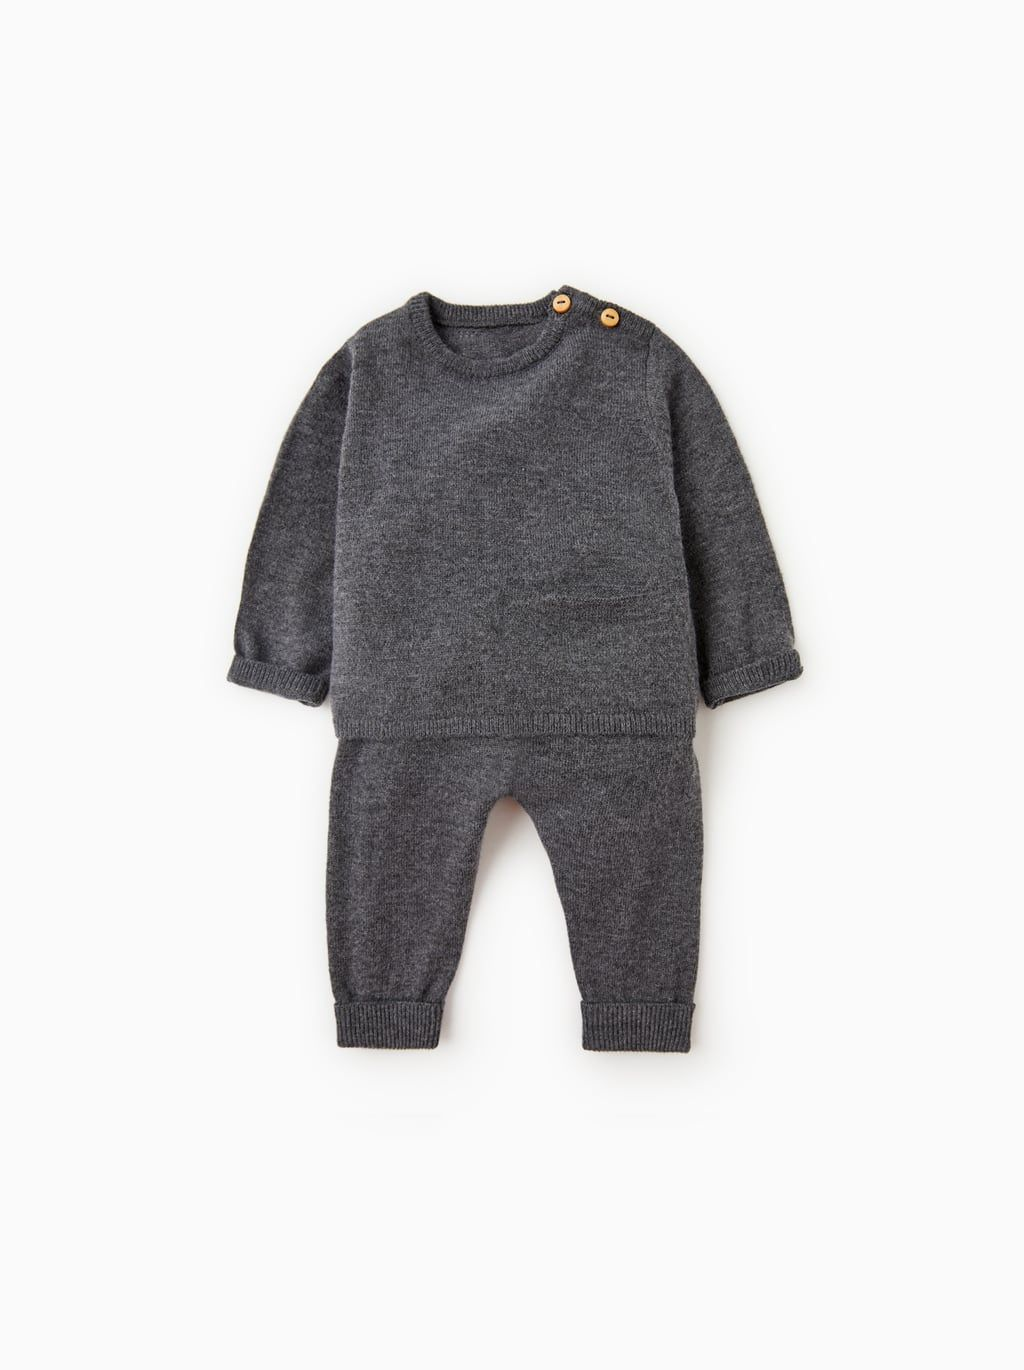 Merino Wool Set Knitted Baby Clothes Baby Knitwear Baby Fashion